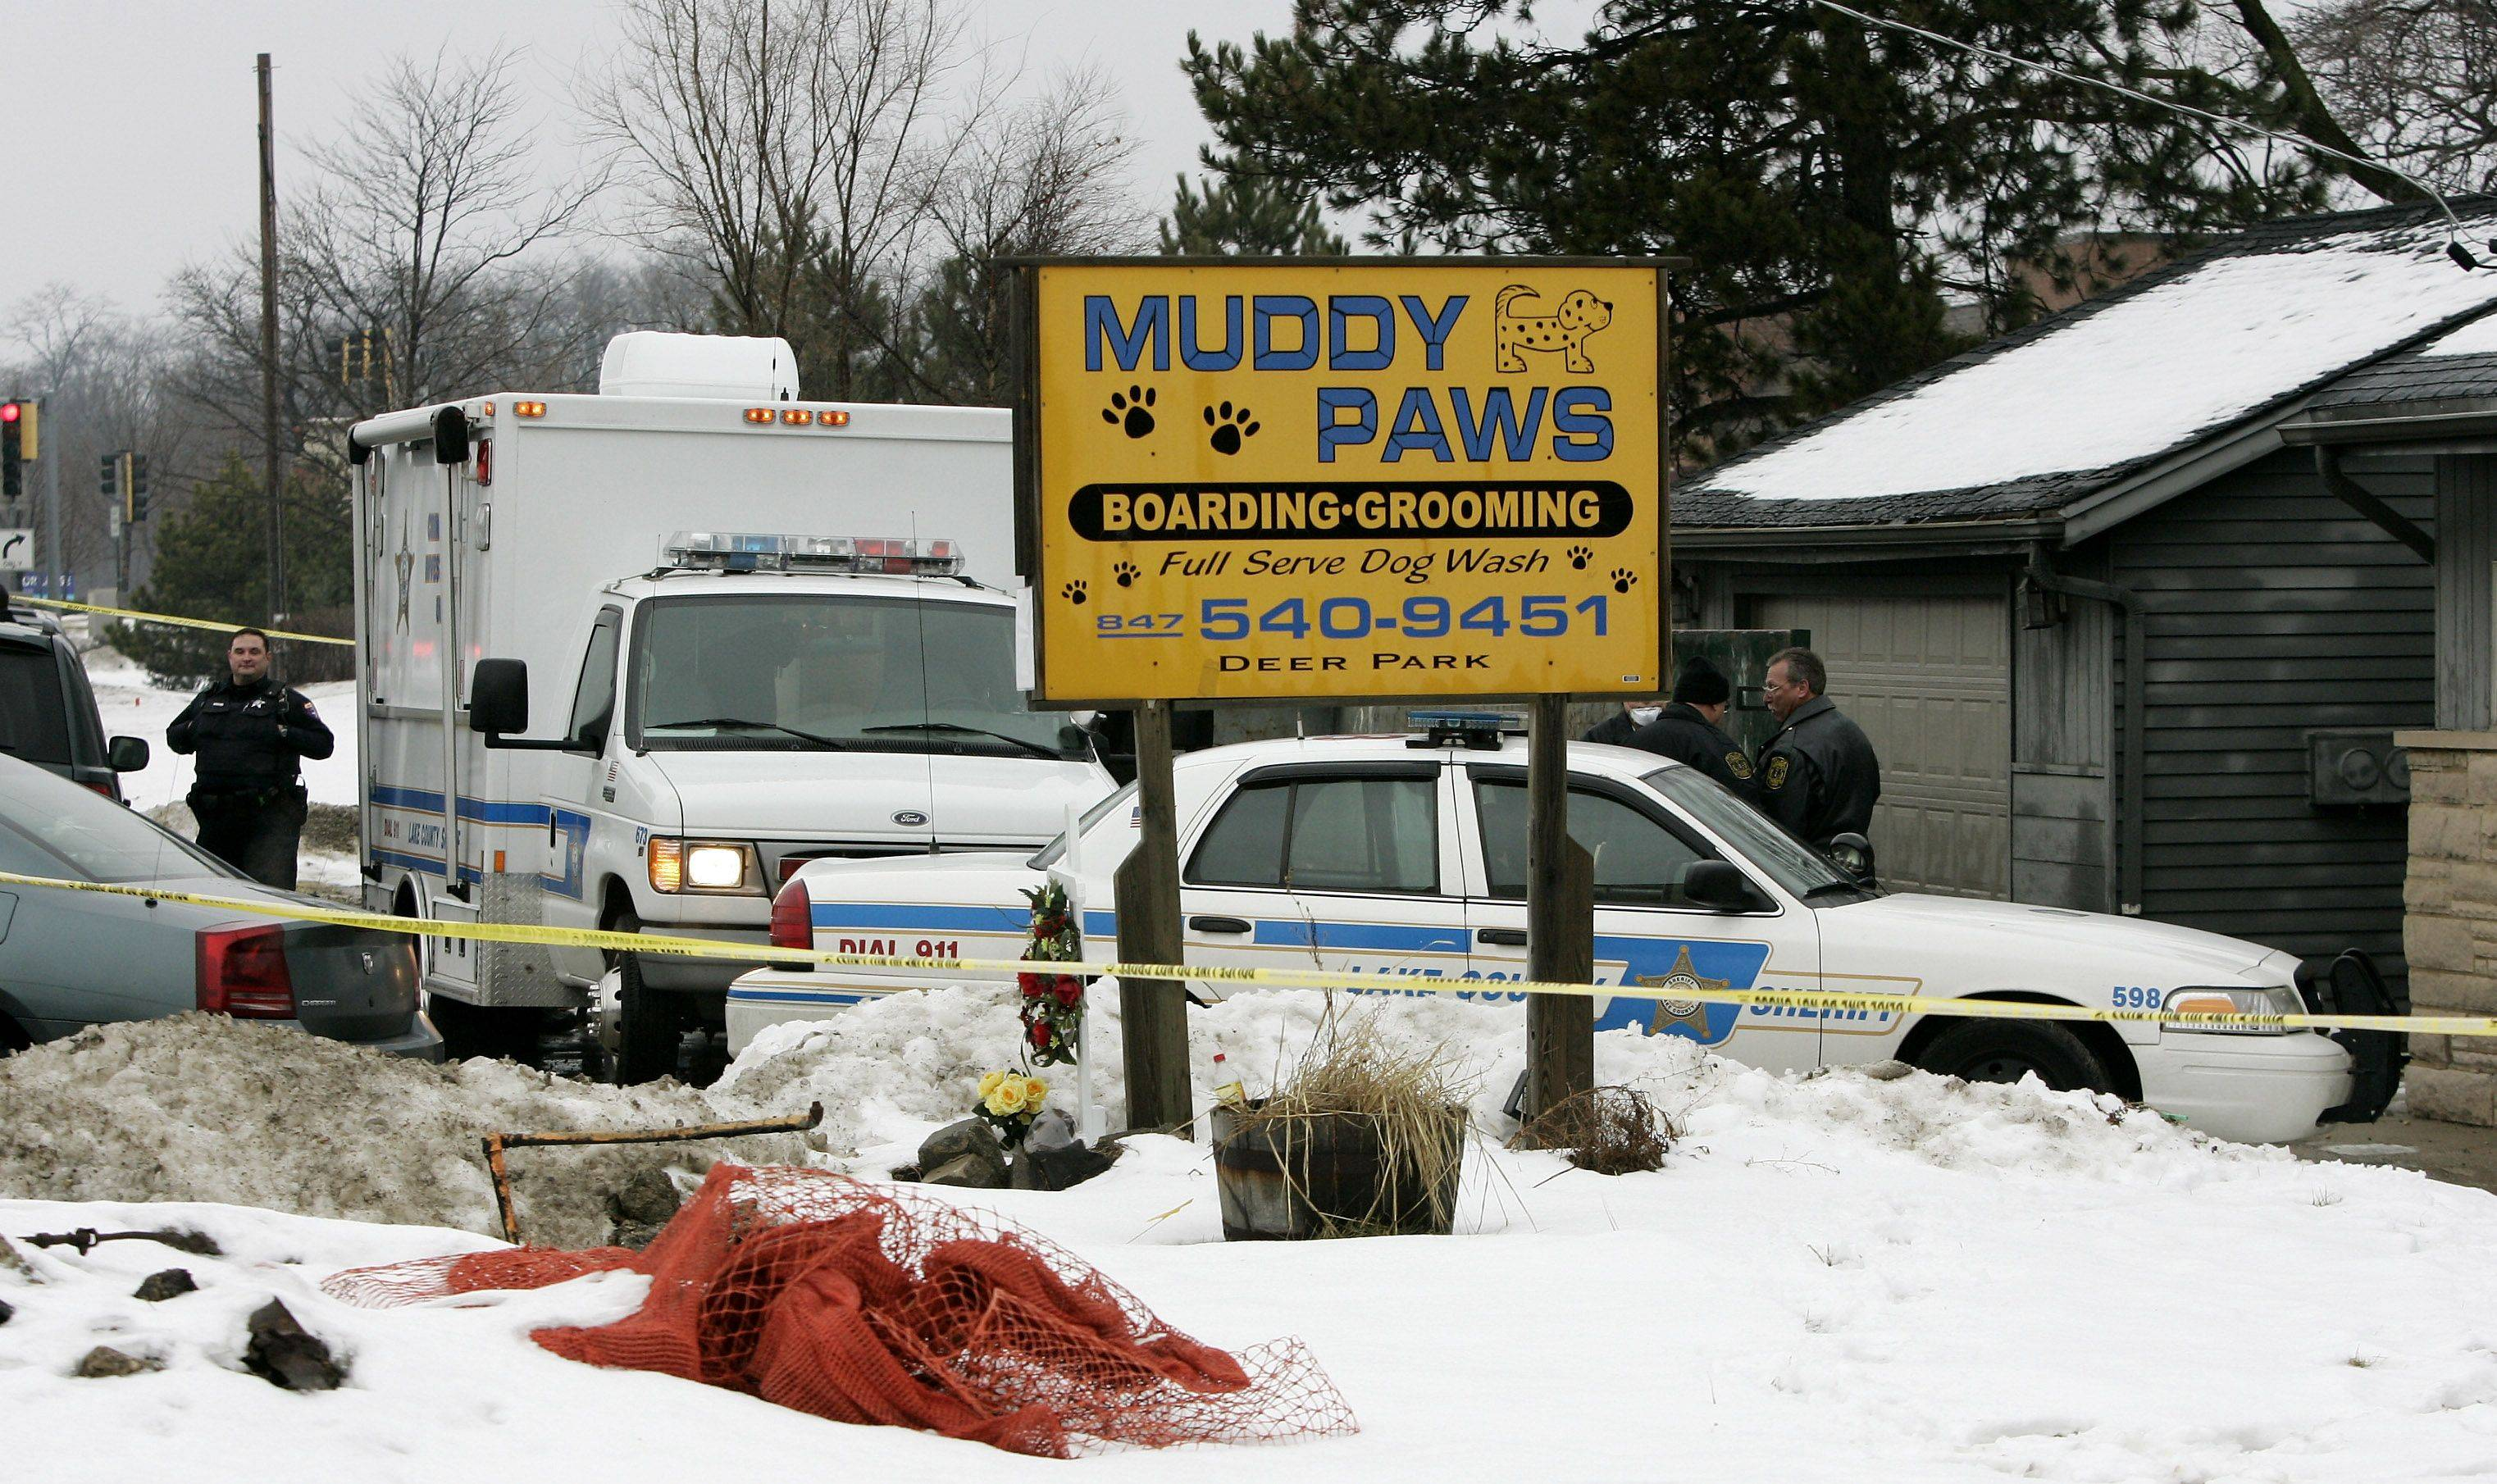 Lake County Sheriff's investigators and Kildeer police investigate the scene at Muddy Paws shelter on Rand Road in Deer Park.